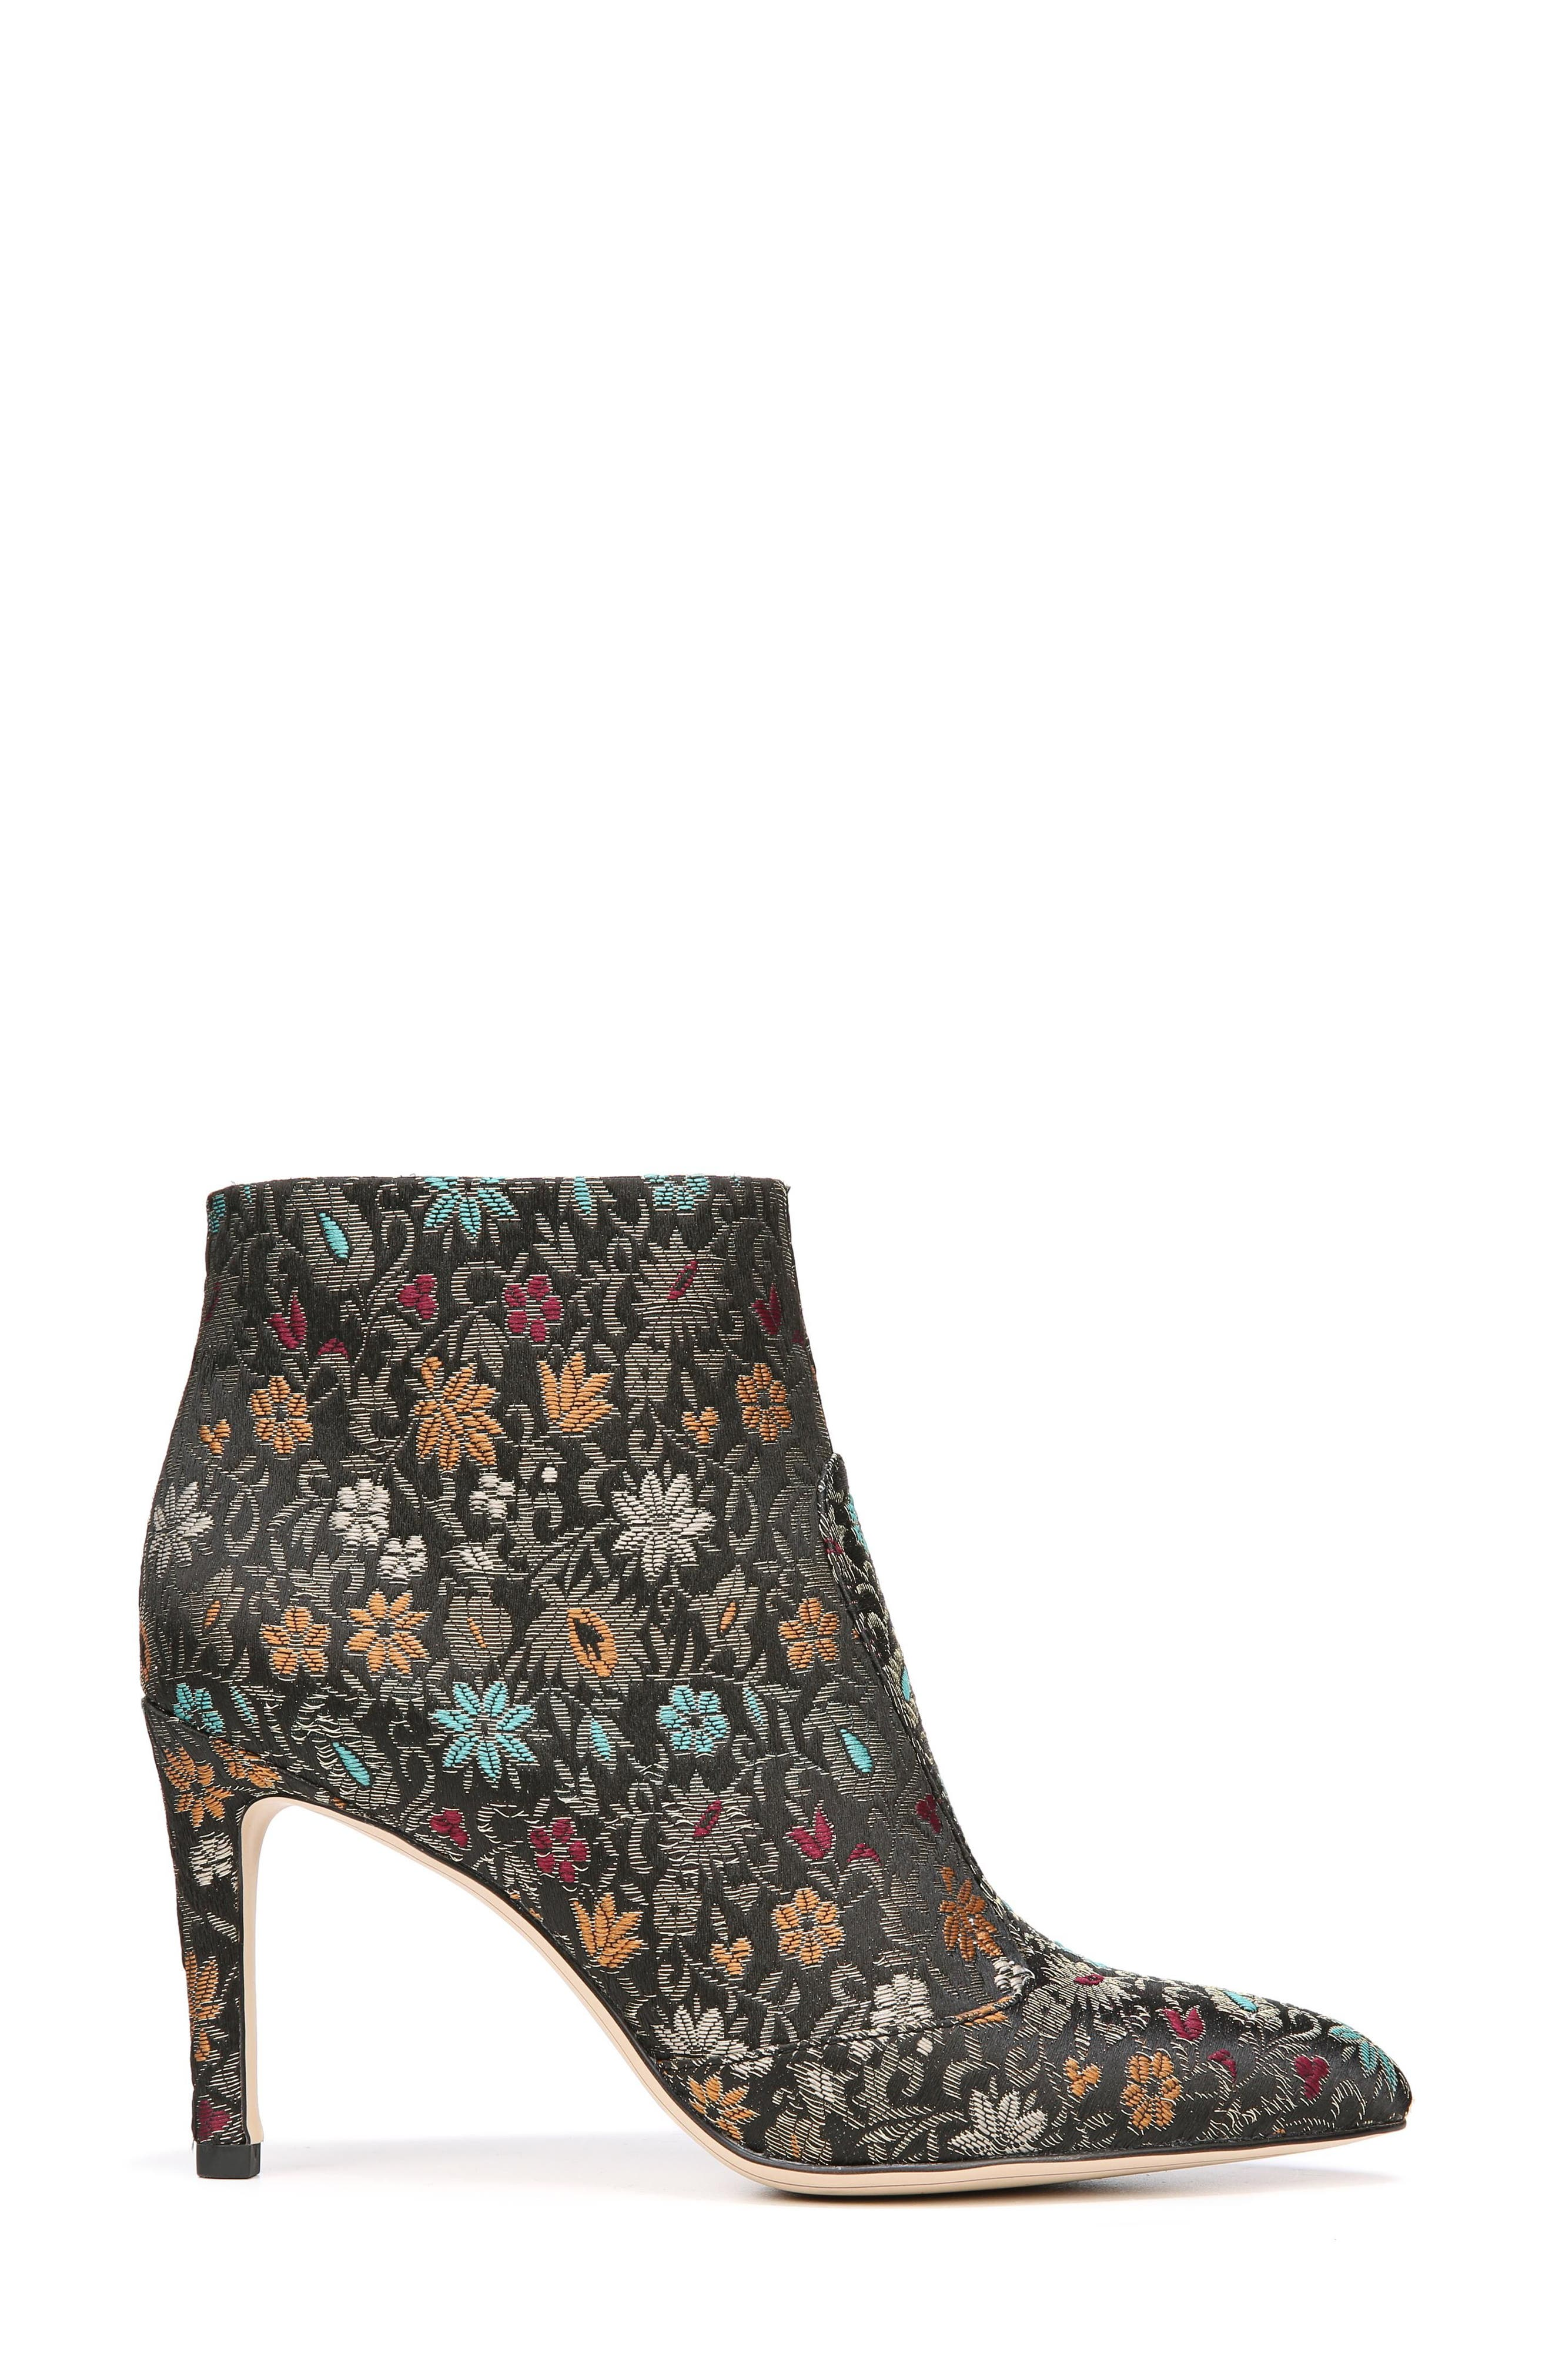 Olette Pointy Toe Bootie,                             Alternate thumbnail 4, color,                             Black Floral Brocade